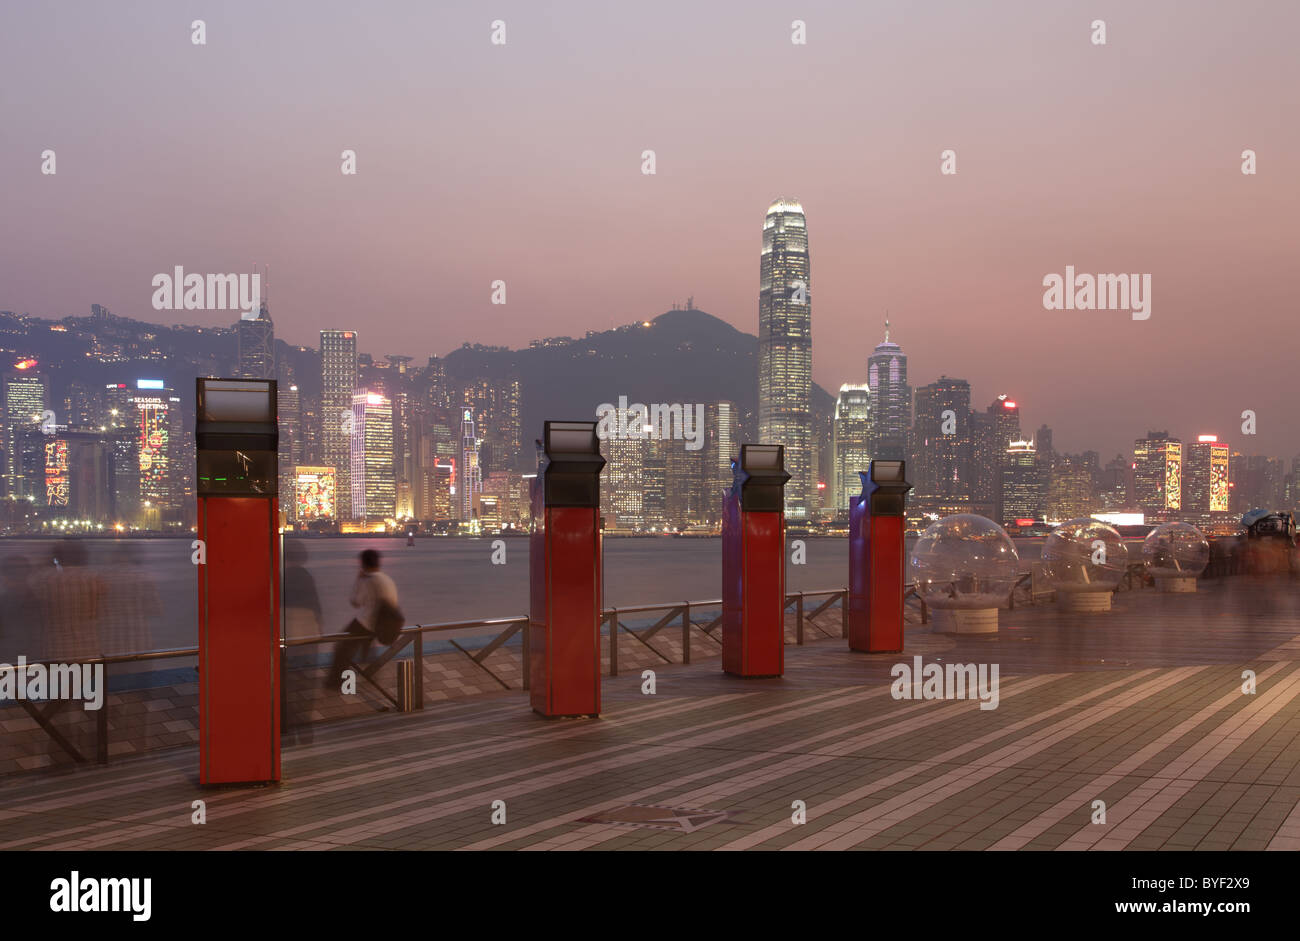 The Avenue of Stars in Hong Kong - Stock Image